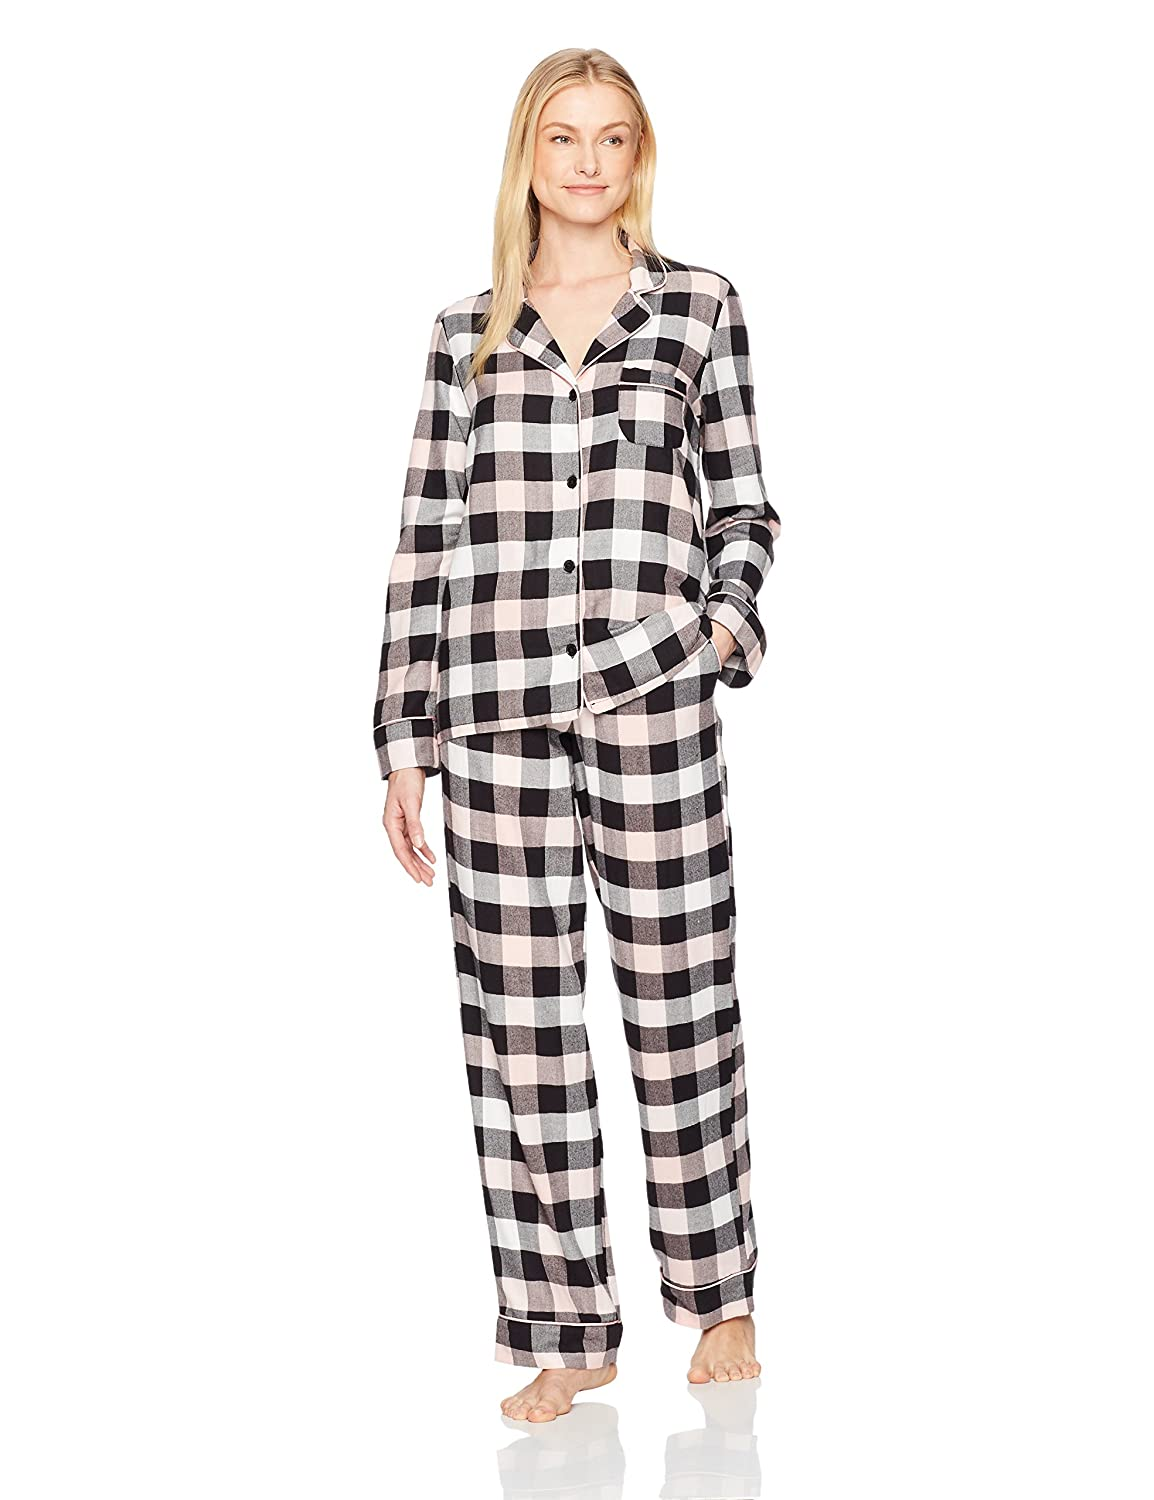 Mae Women's Cozy Flannel Notch Collar Pajama Set with Piping CIKHU 1591464